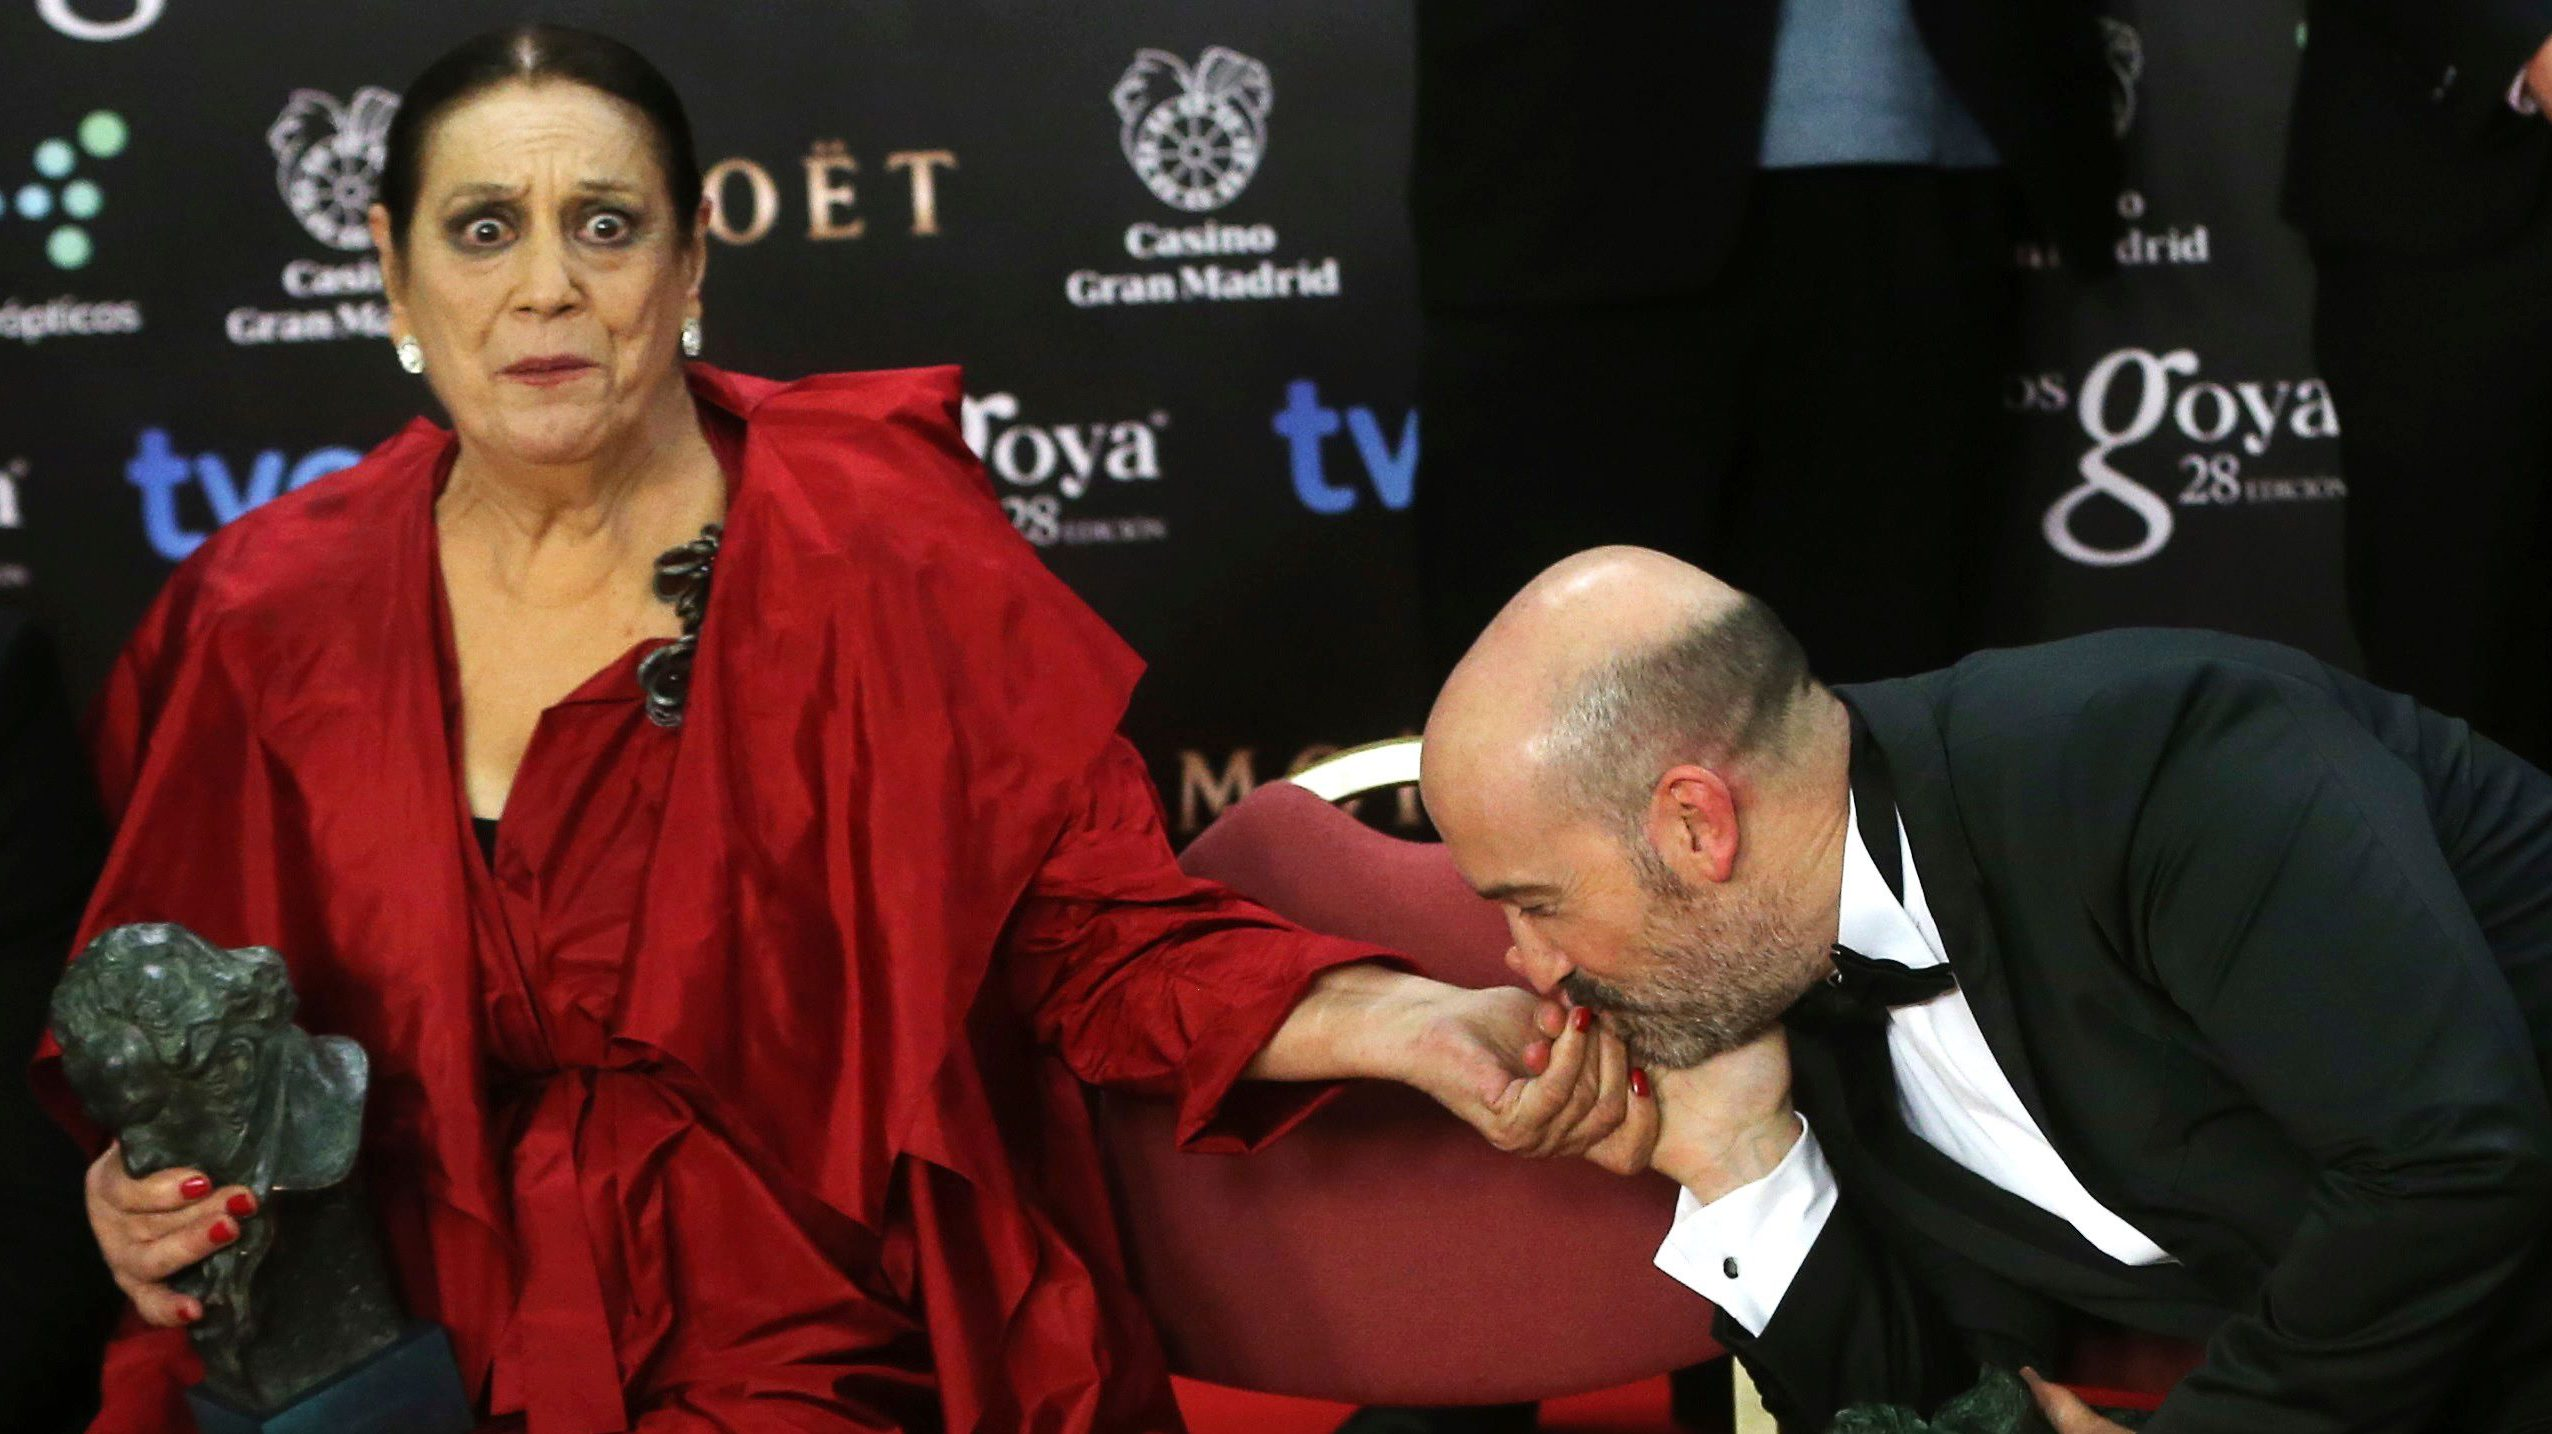 Actor Javier Camara, winner of the Best Leading Actor award, kisses the hand of actress Terele Pavez.